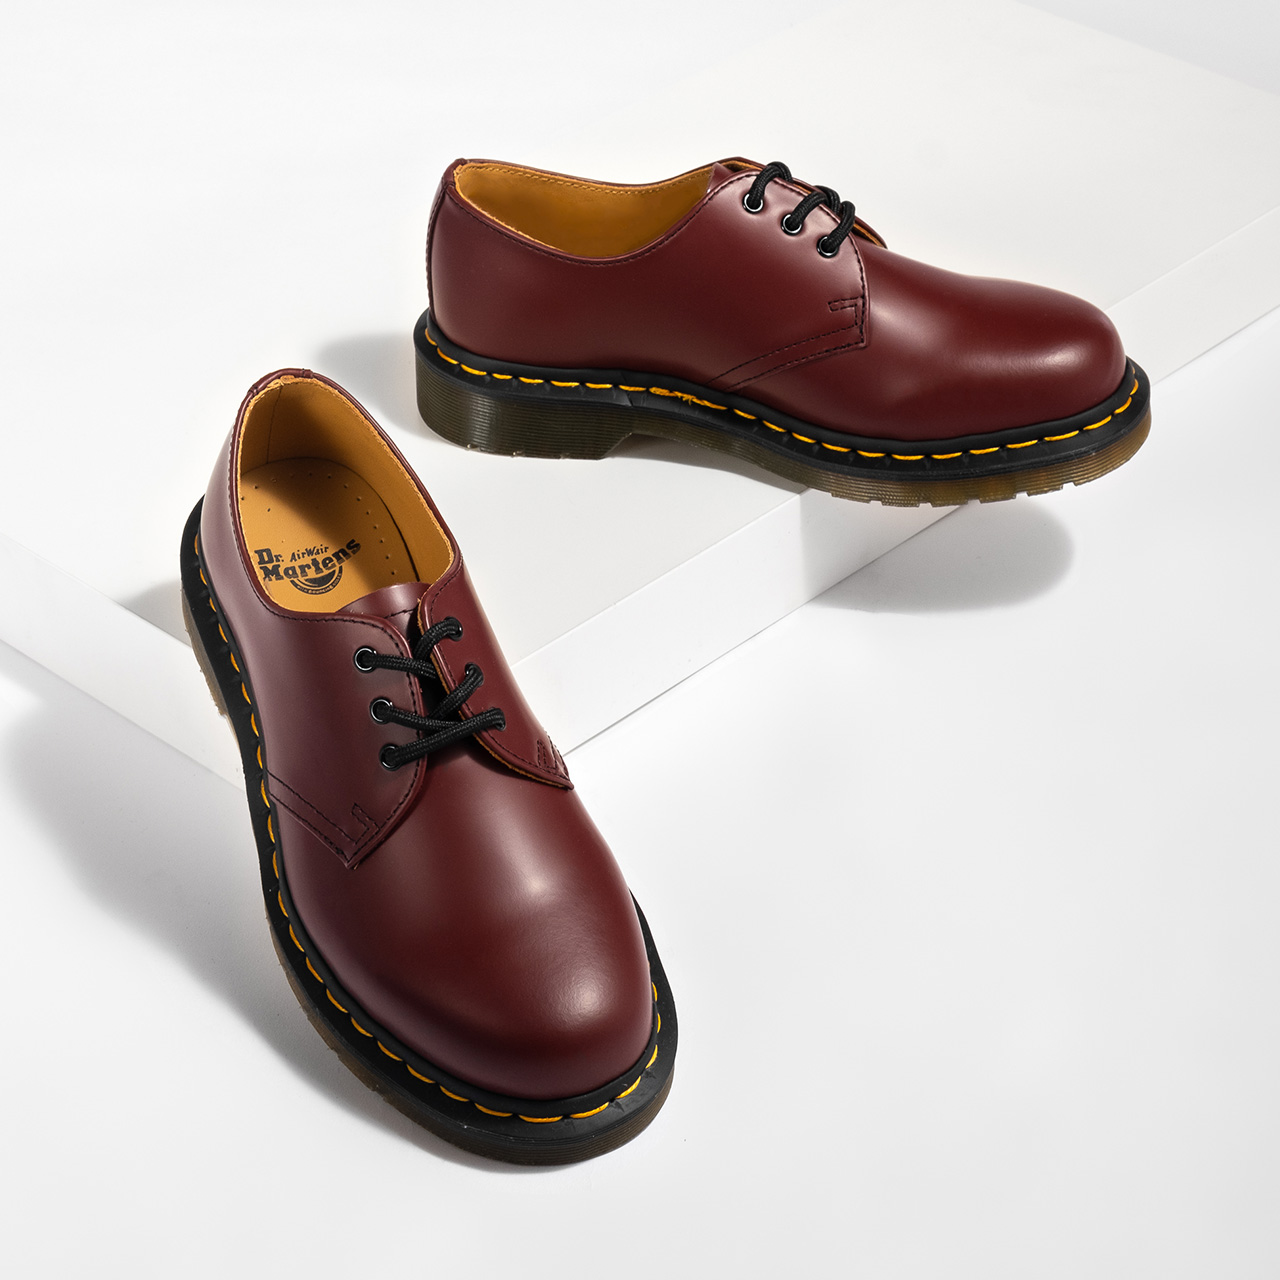 DR. MARTENS 1461 Smooth Leather Shoes – 37, nízké červená